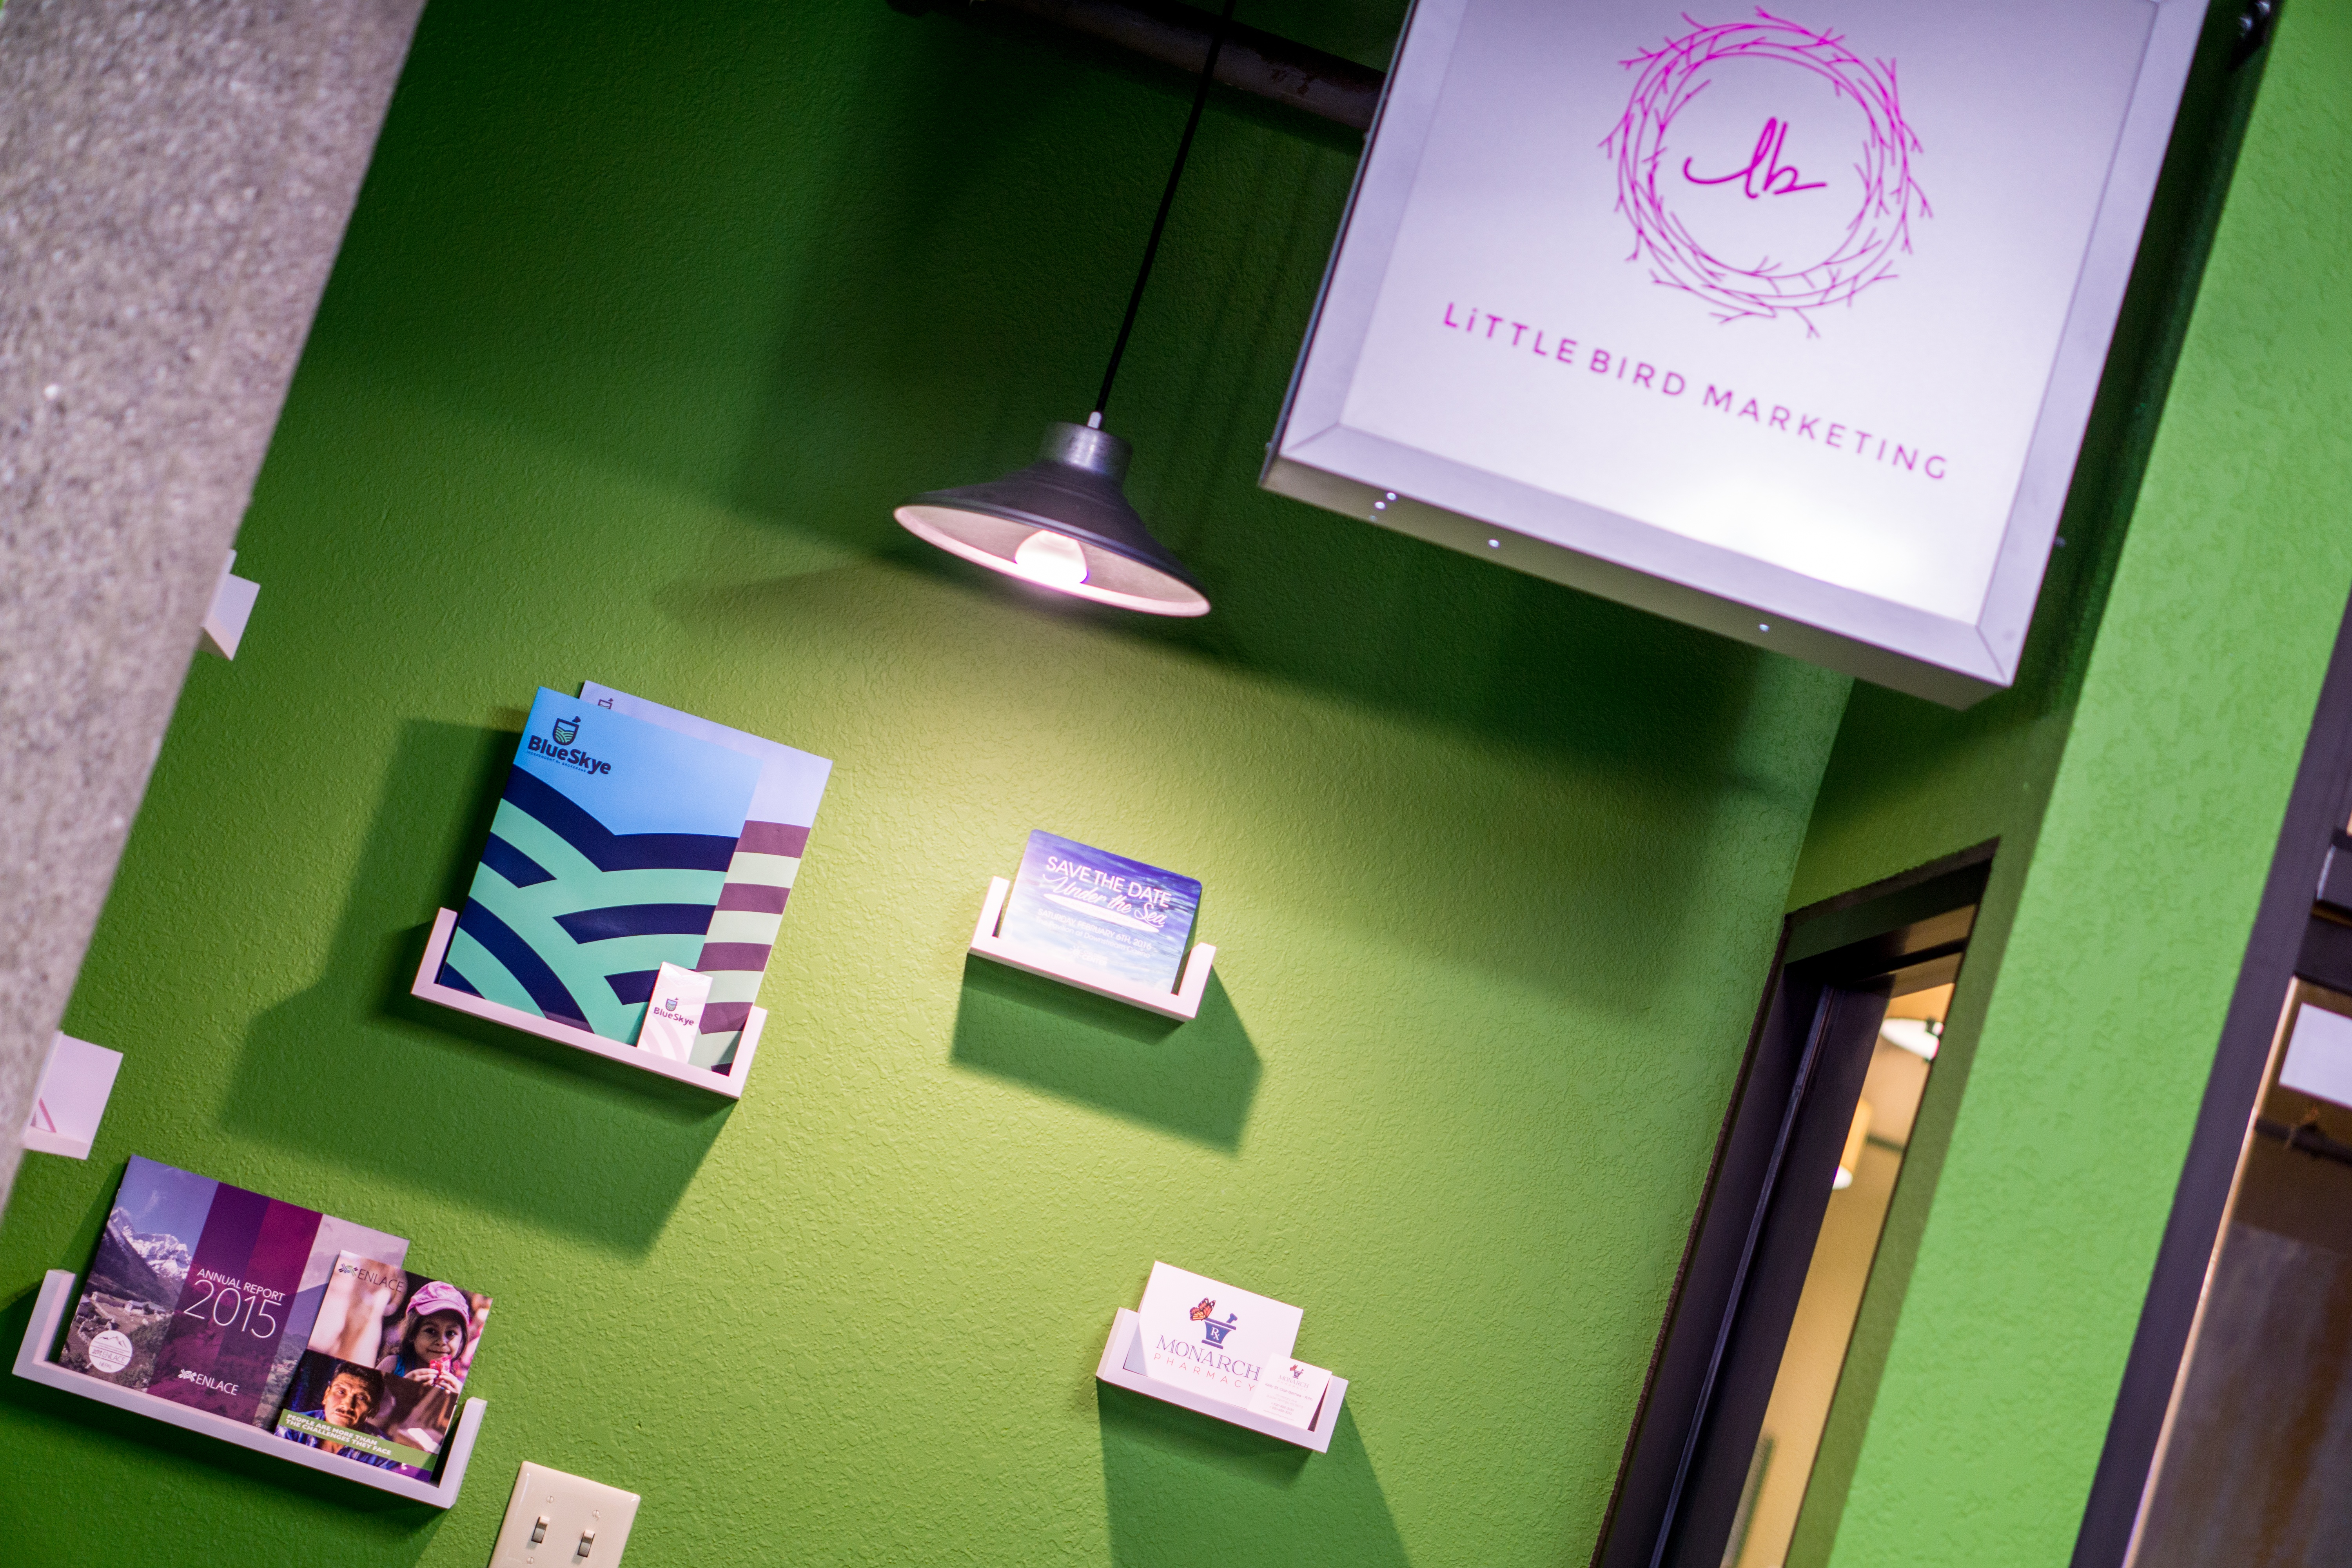 Little Bird Marketing front window display showcases a selection of our award-winning designs!